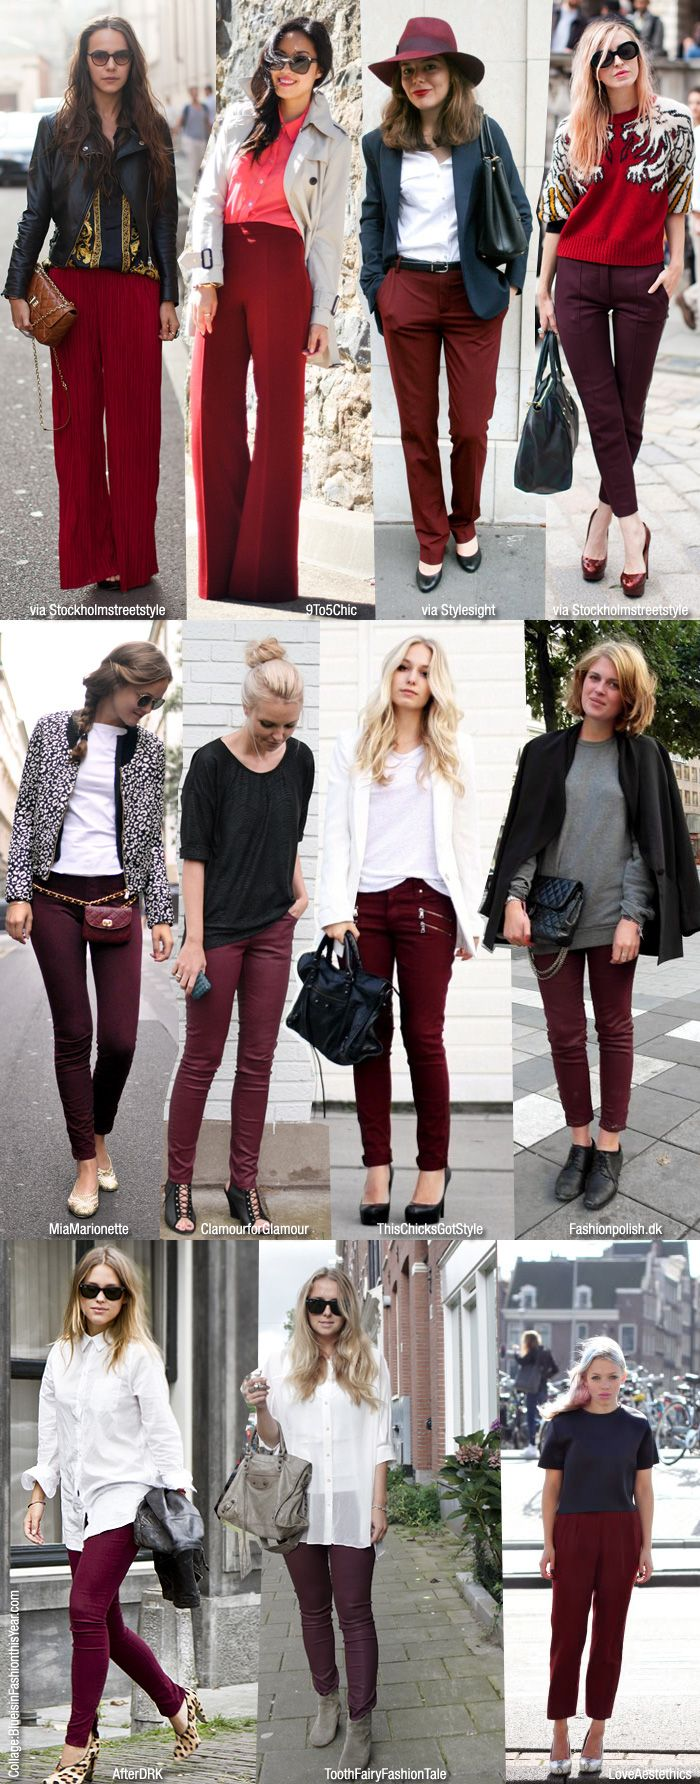 Burgundy pants. More photos on linked blog